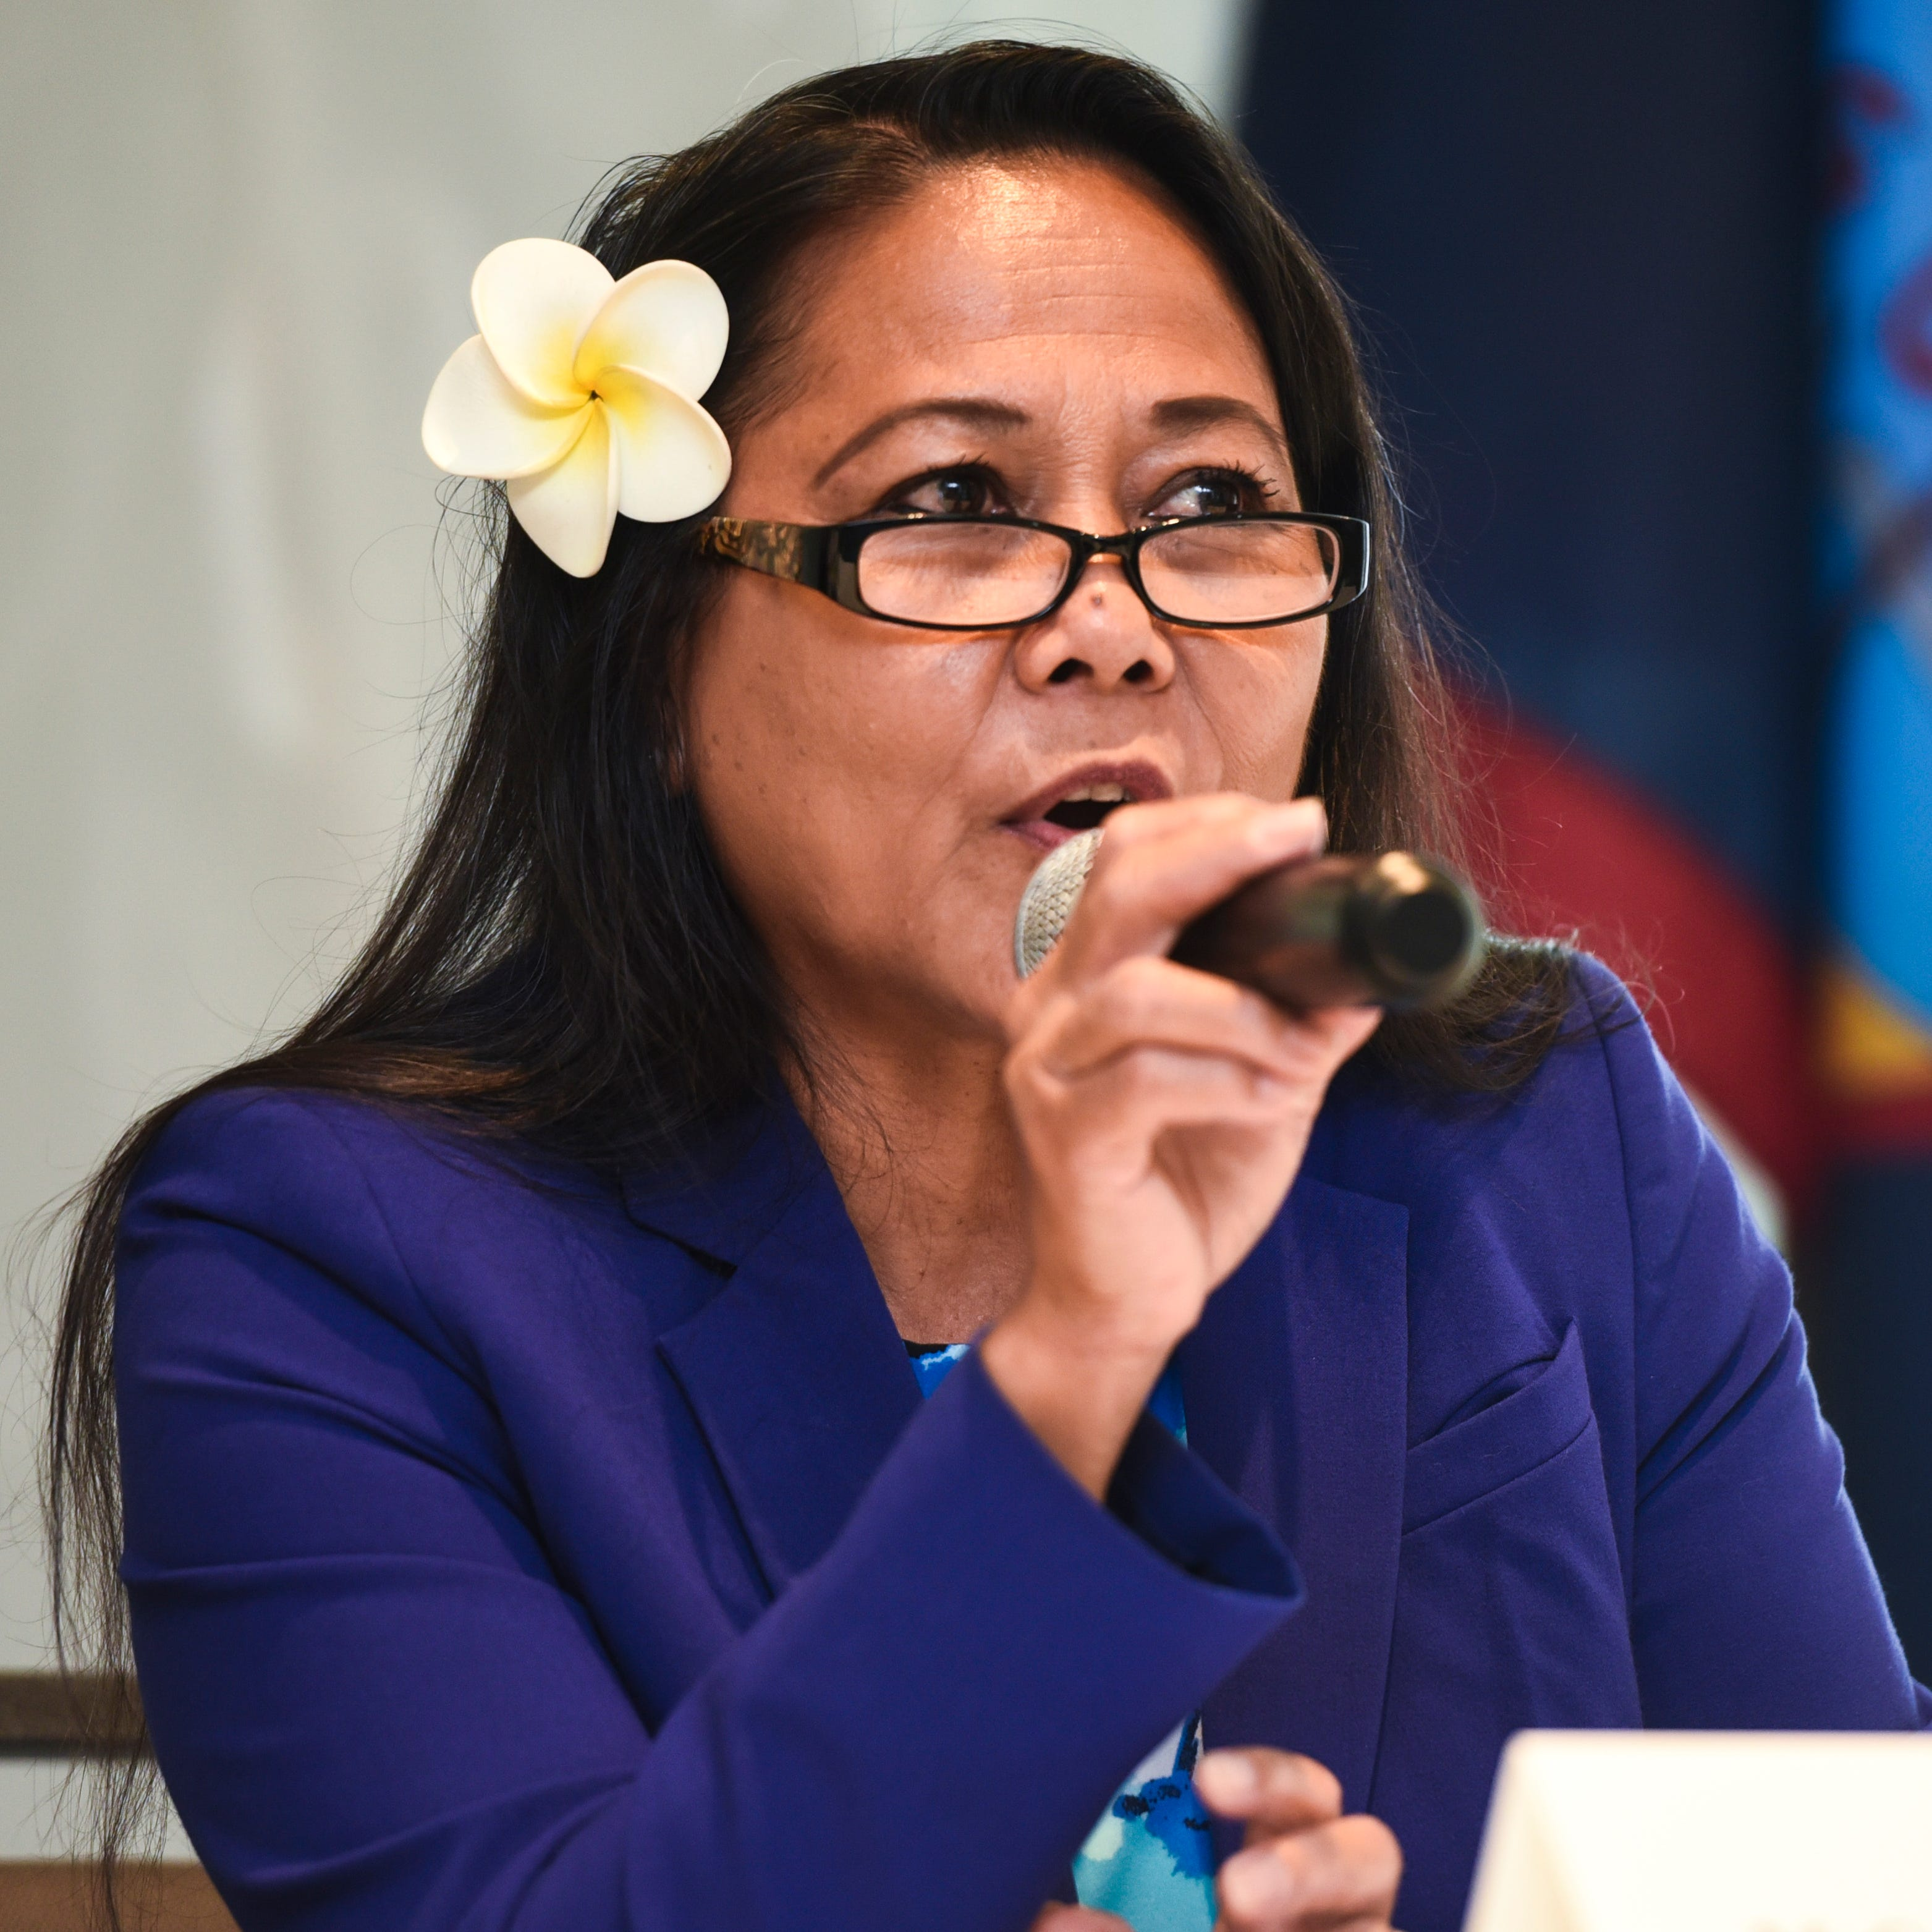 MiChelle Hope Taitano still head of parole board